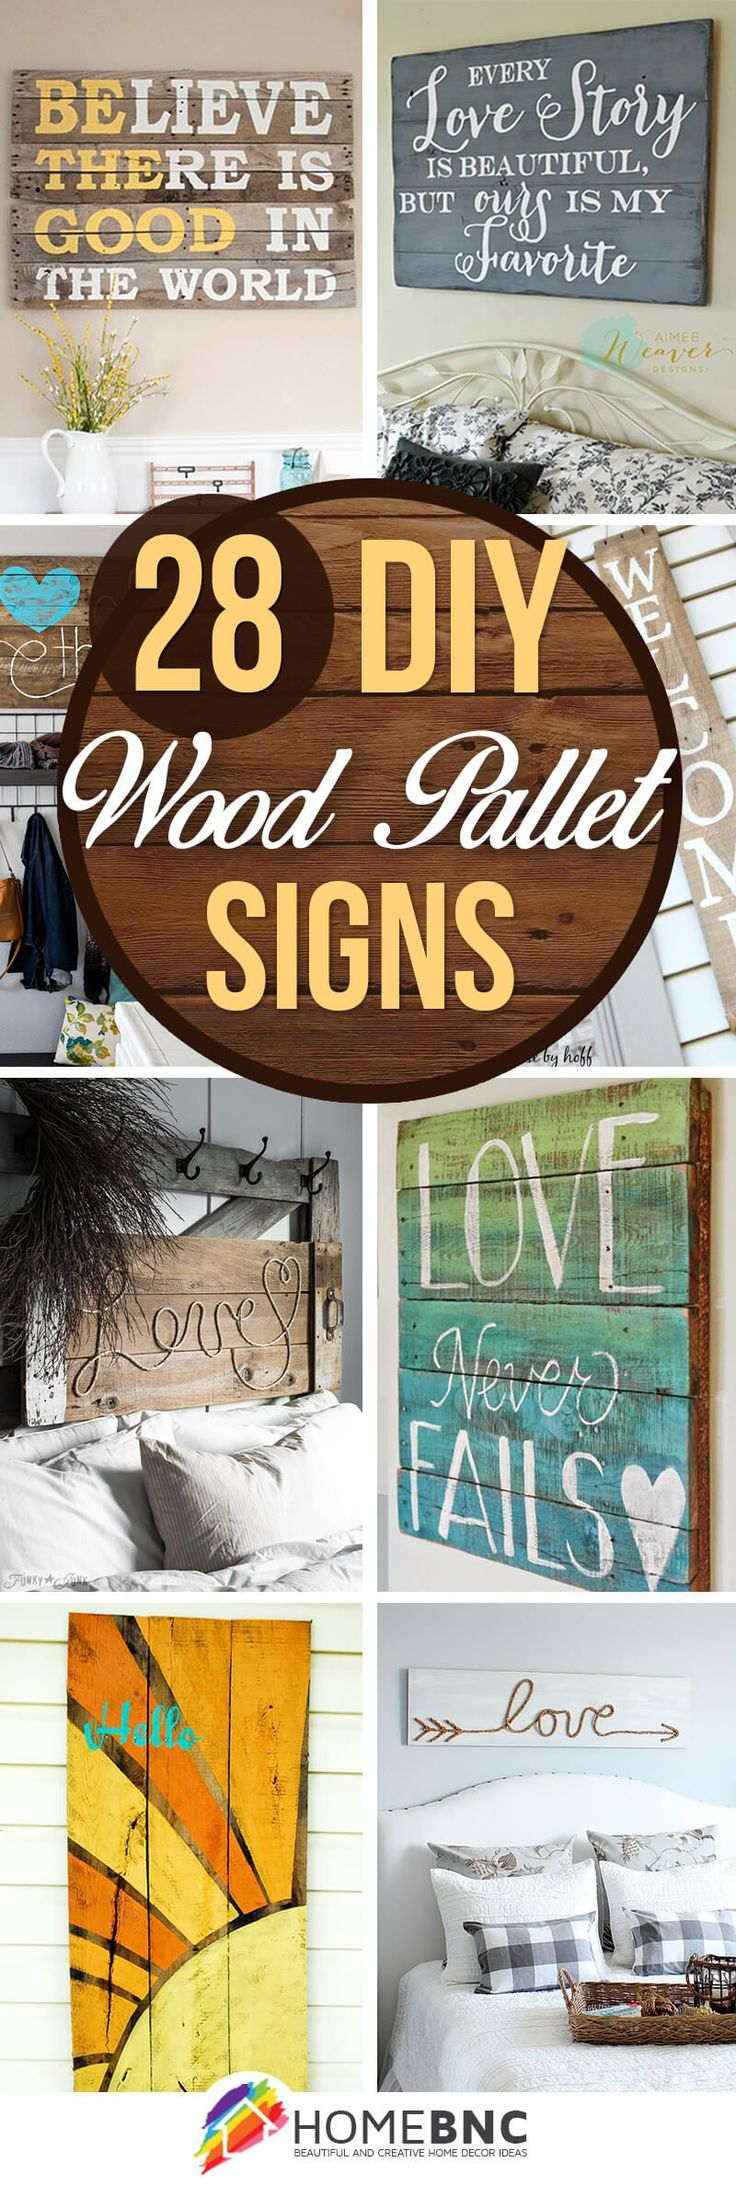 Best 25+ Signs Ideas Only On Pinterest | House Signs, Wood Signs And Diy  Signs